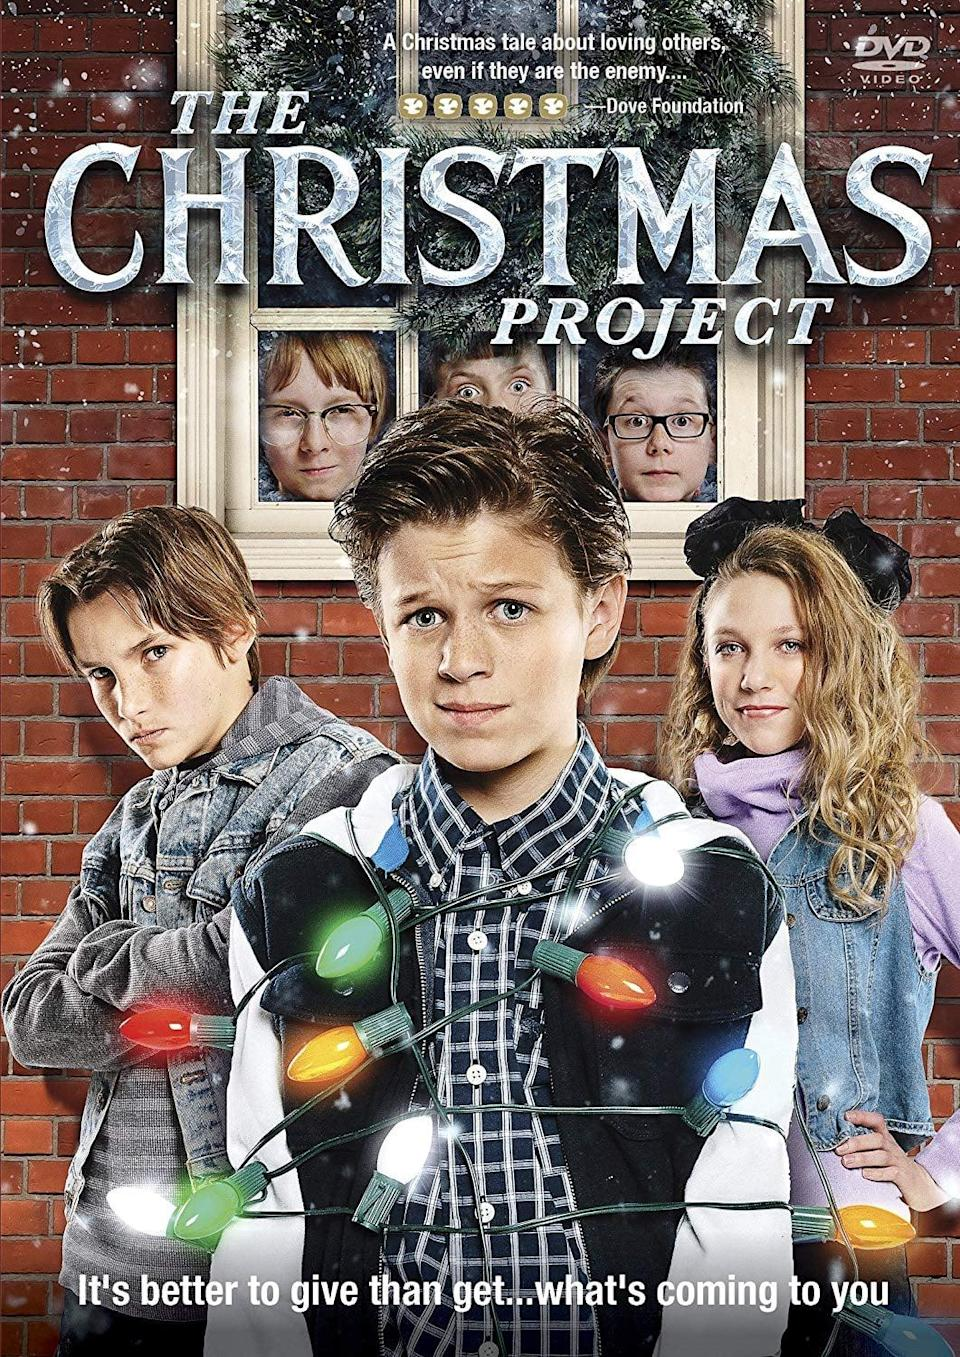 """<p><strong>Netflix description:</strong> """"Four brothers prepare for war when they're forced to deliver secret holiday gifts to the school bullies. But they soon learn kindness goes a long way.""""</p> <p><strong>Ages it's appropriate for:</strong> 8 and up</p> <p><strong>Watch it here:</strong> <a href=""""https://www.netflix.com/title/80156772"""" class=""""link rapid-noclick-resp"""" rel=""""nofollow noopener"""" target=""""_blank"""" data-ylk=""""slk:The Christmas Project""""><strong>The Christmas Project</strong></a></p>"""